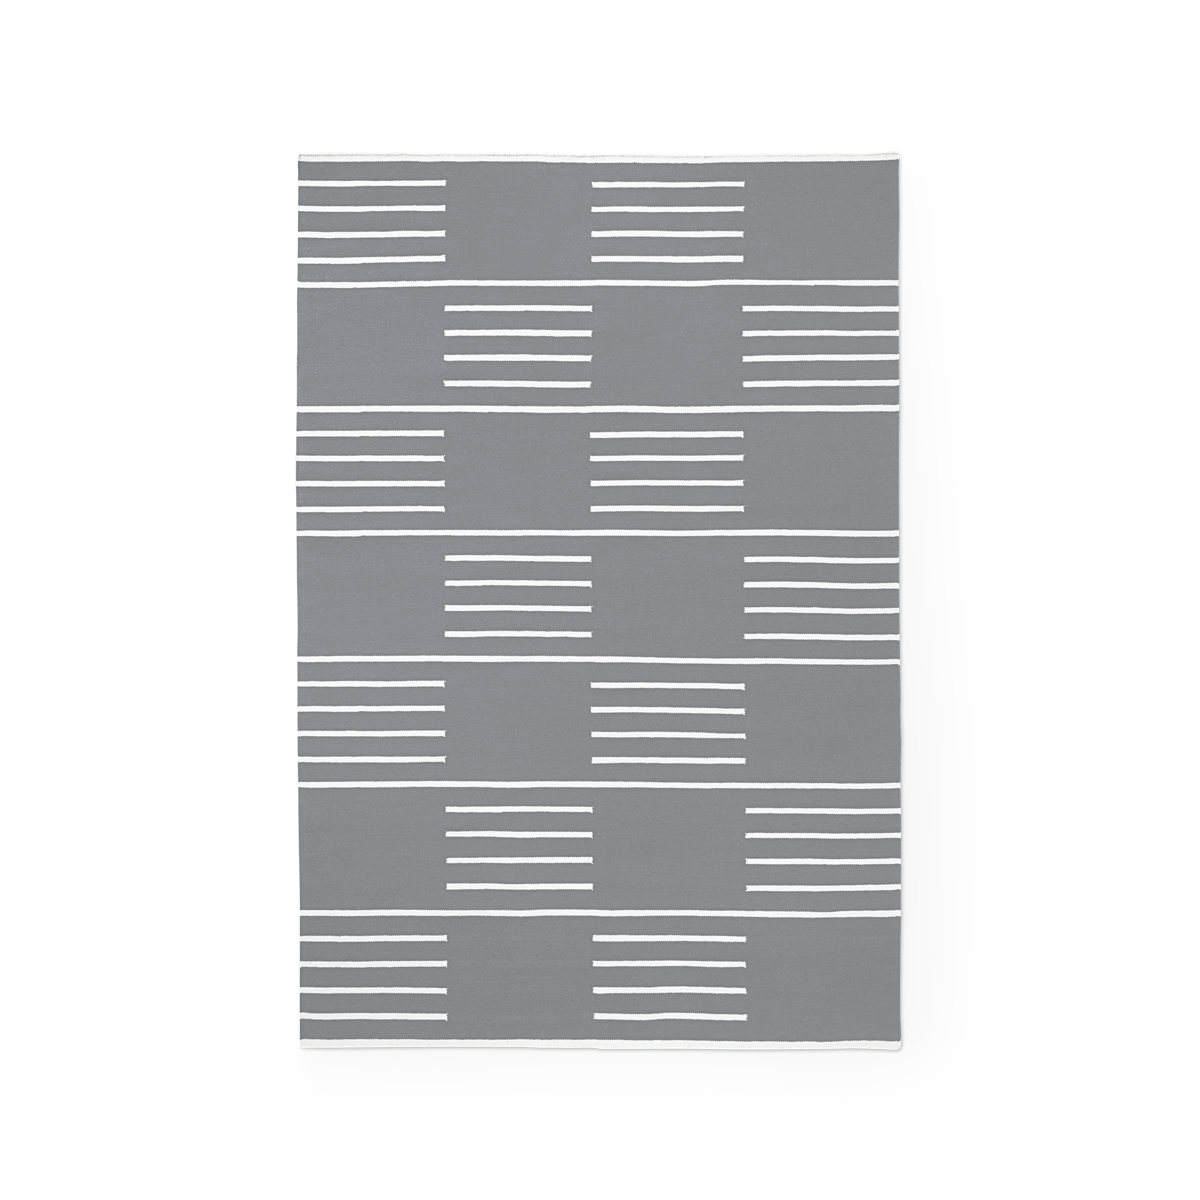 Product image of the flatweave rug Classic in the color Gray. On it is a pattern made out of stripes in a checkerboard fashion in a white color.